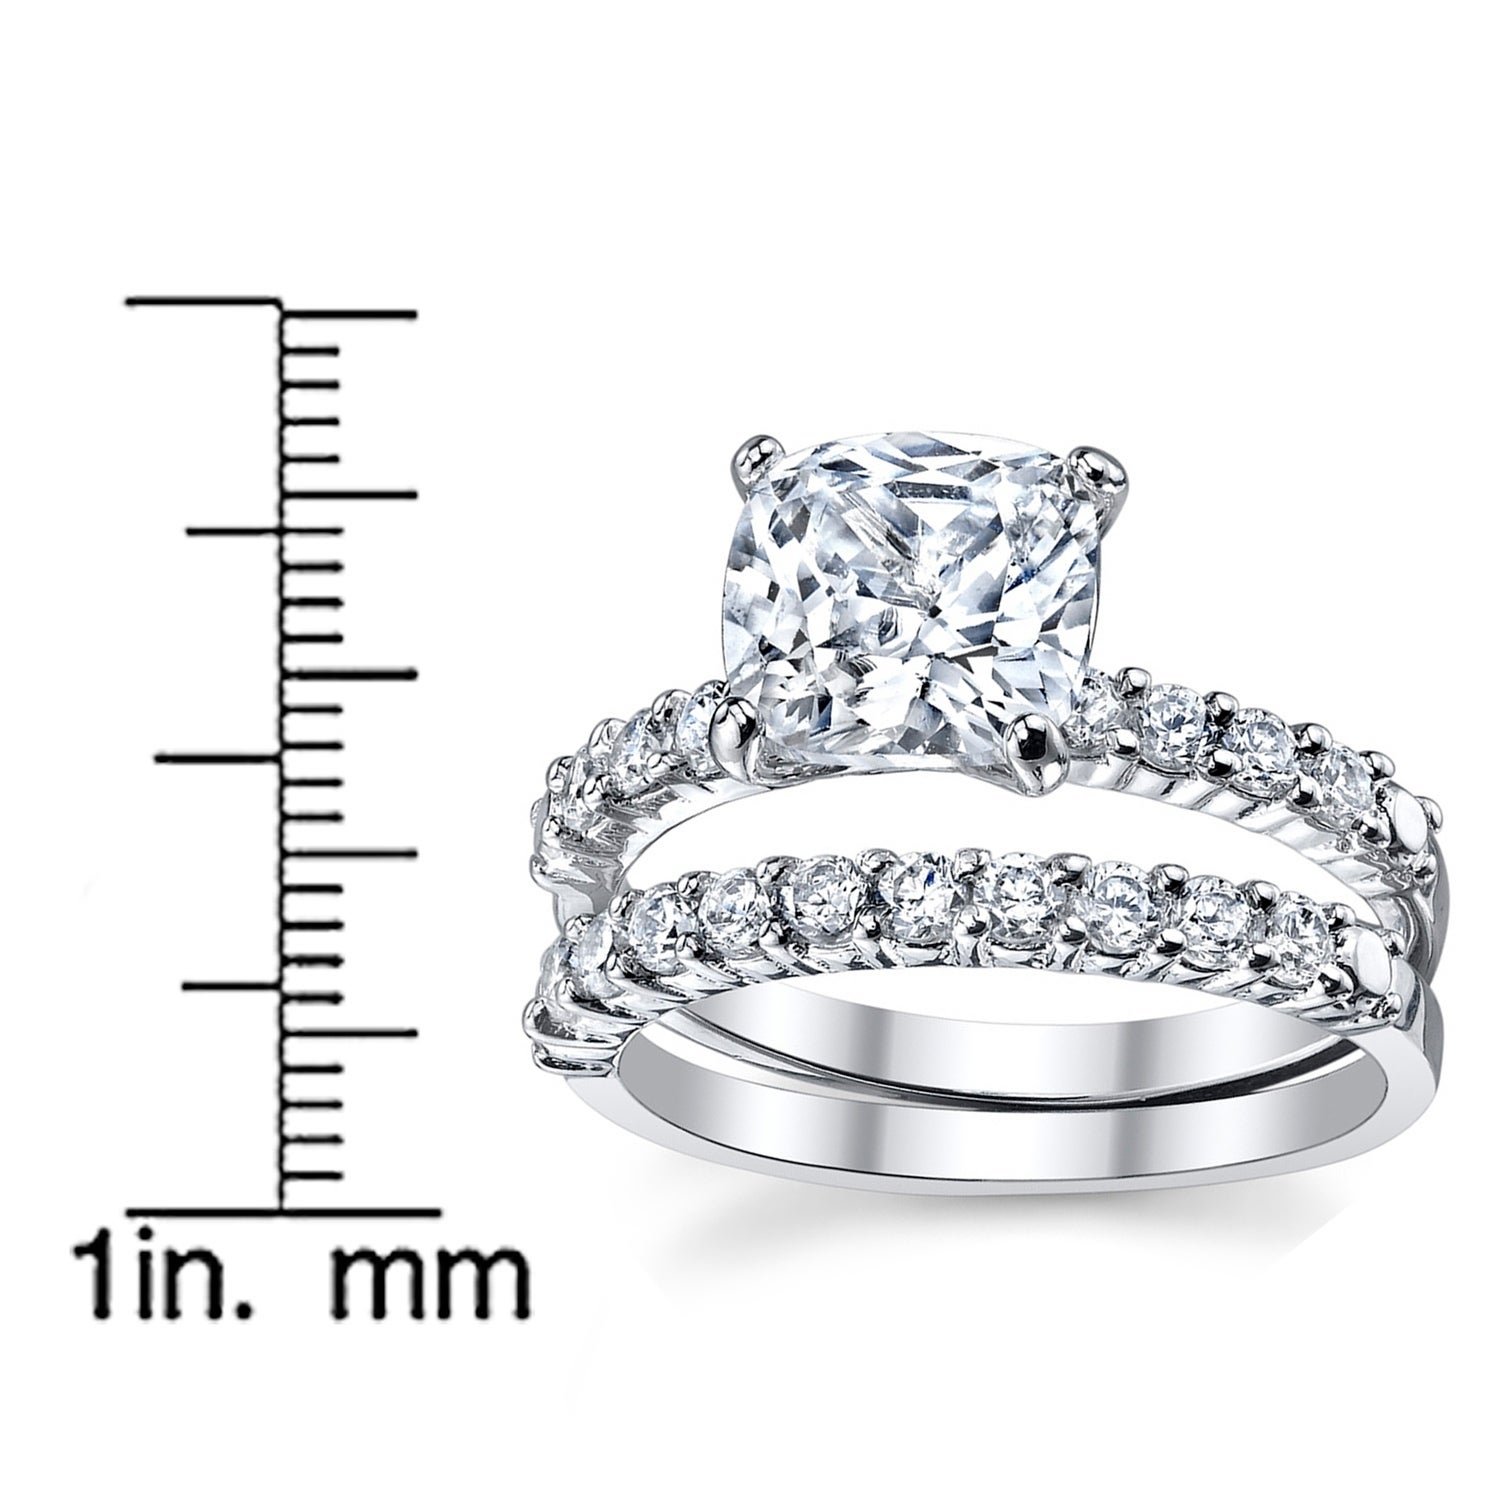 princess of herdiamond impressive uncategorized band size for rings sets diamond concept set white picture lovely ideasnd bridal ring design gold full wedding him and her cut